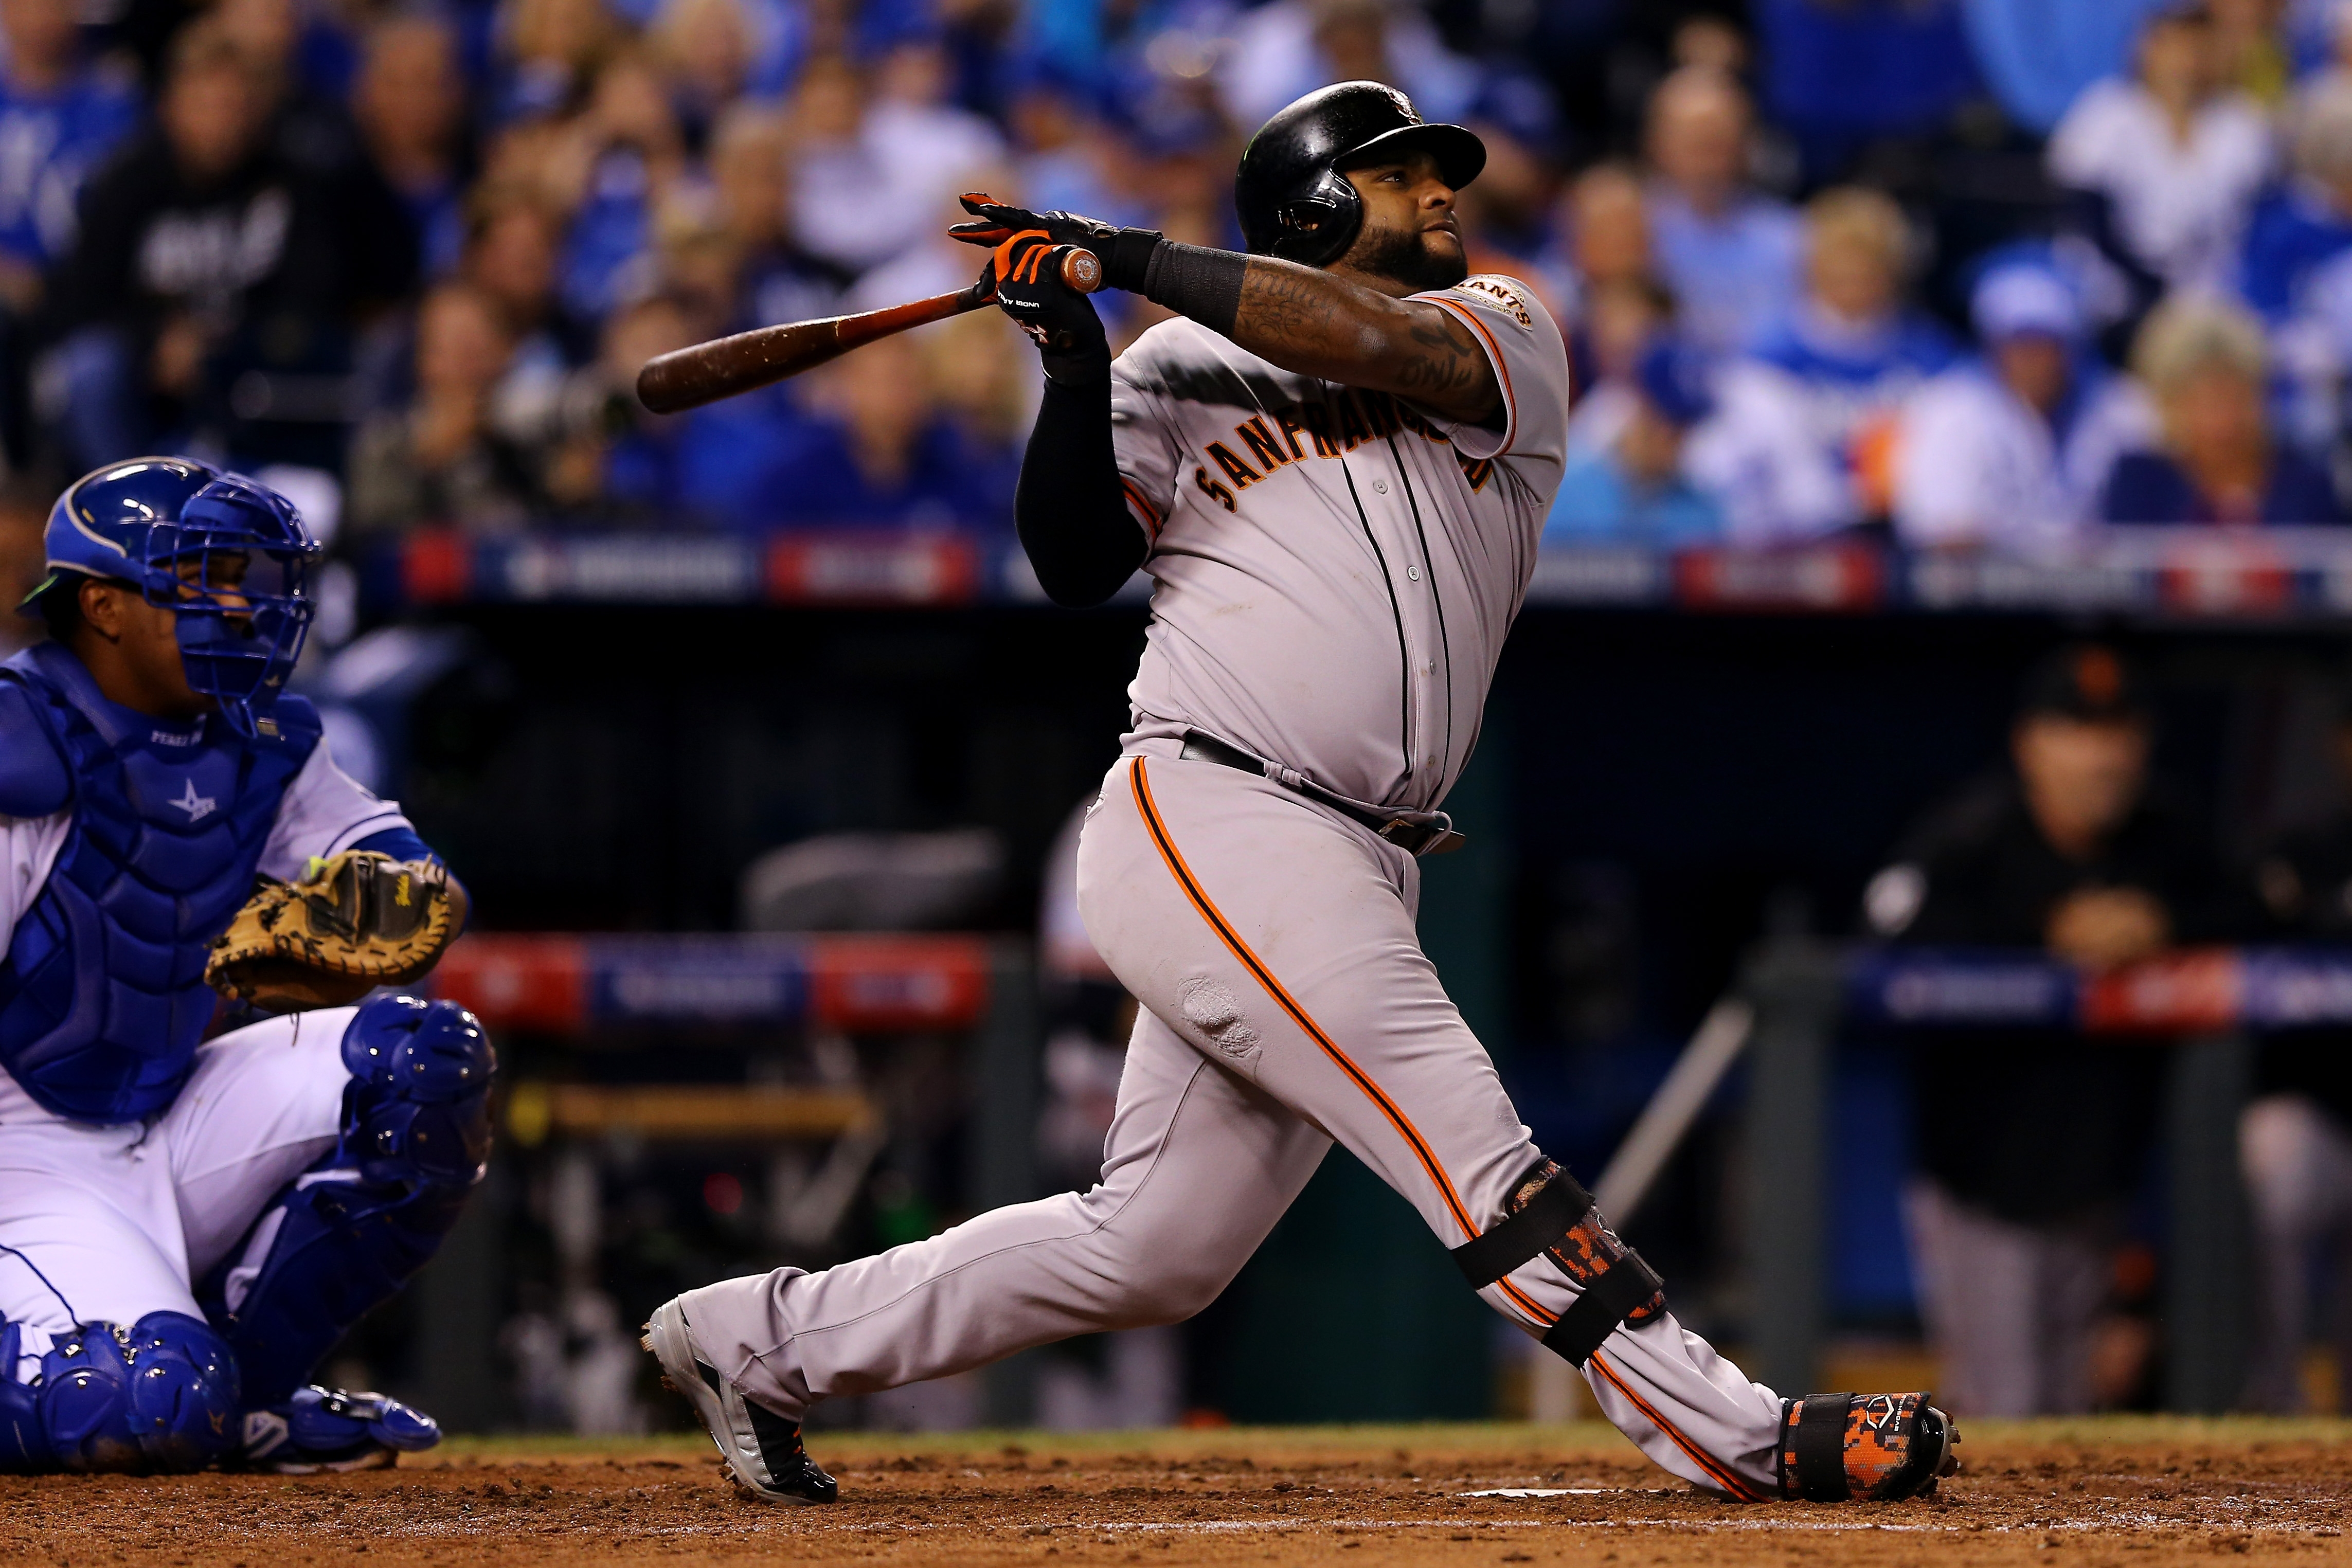 Pablo Sandoval of the Giants smacks a double in the second inning Wednesday night in Kauffman Stadium.